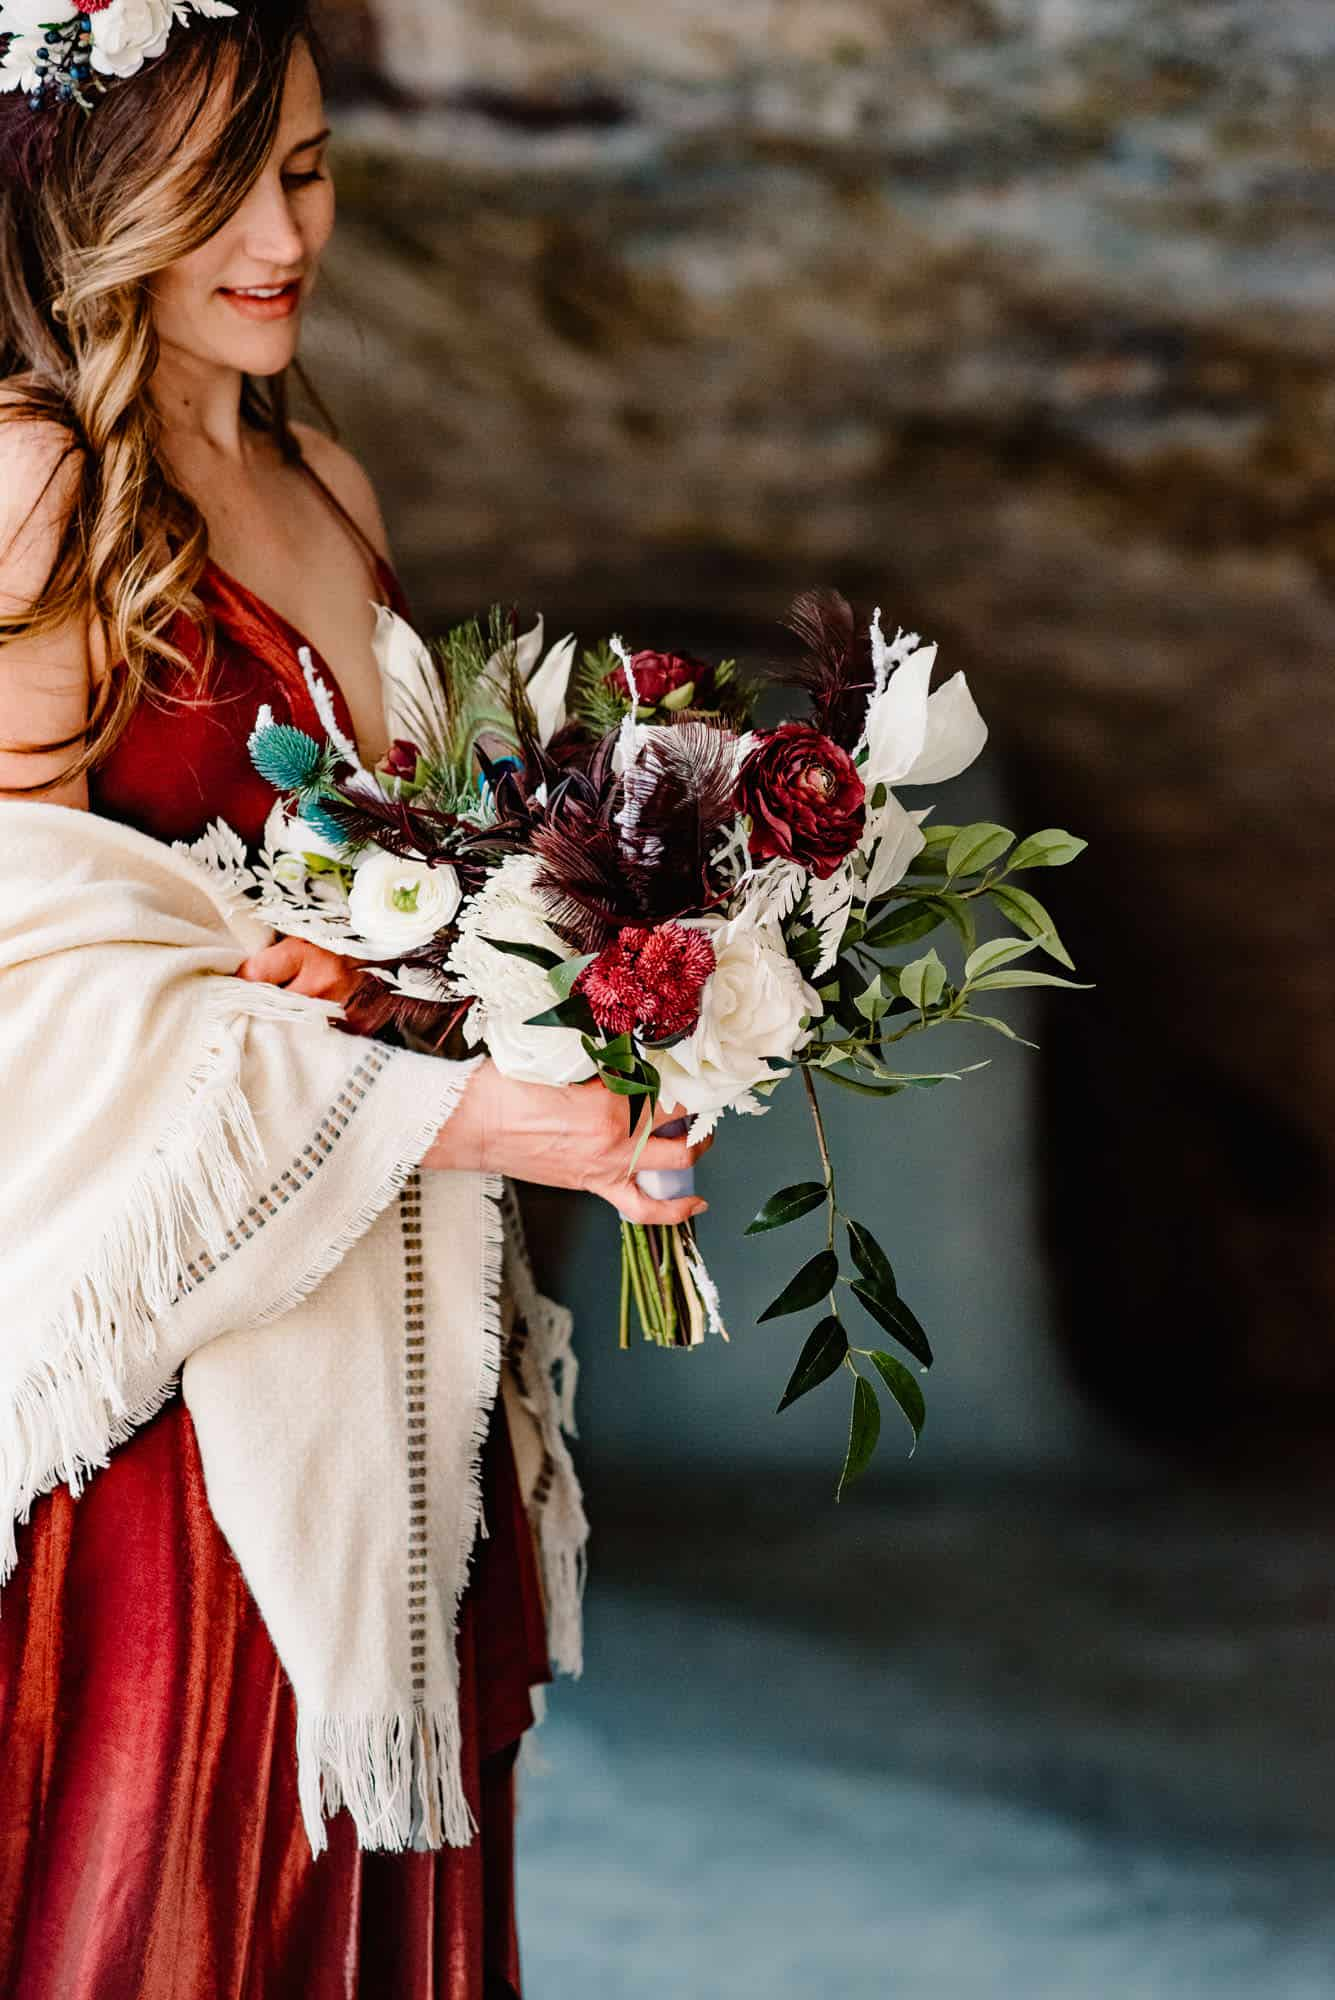 bride in a red dress holding flowers covering her arms with a shawl to stay warm in the winter.